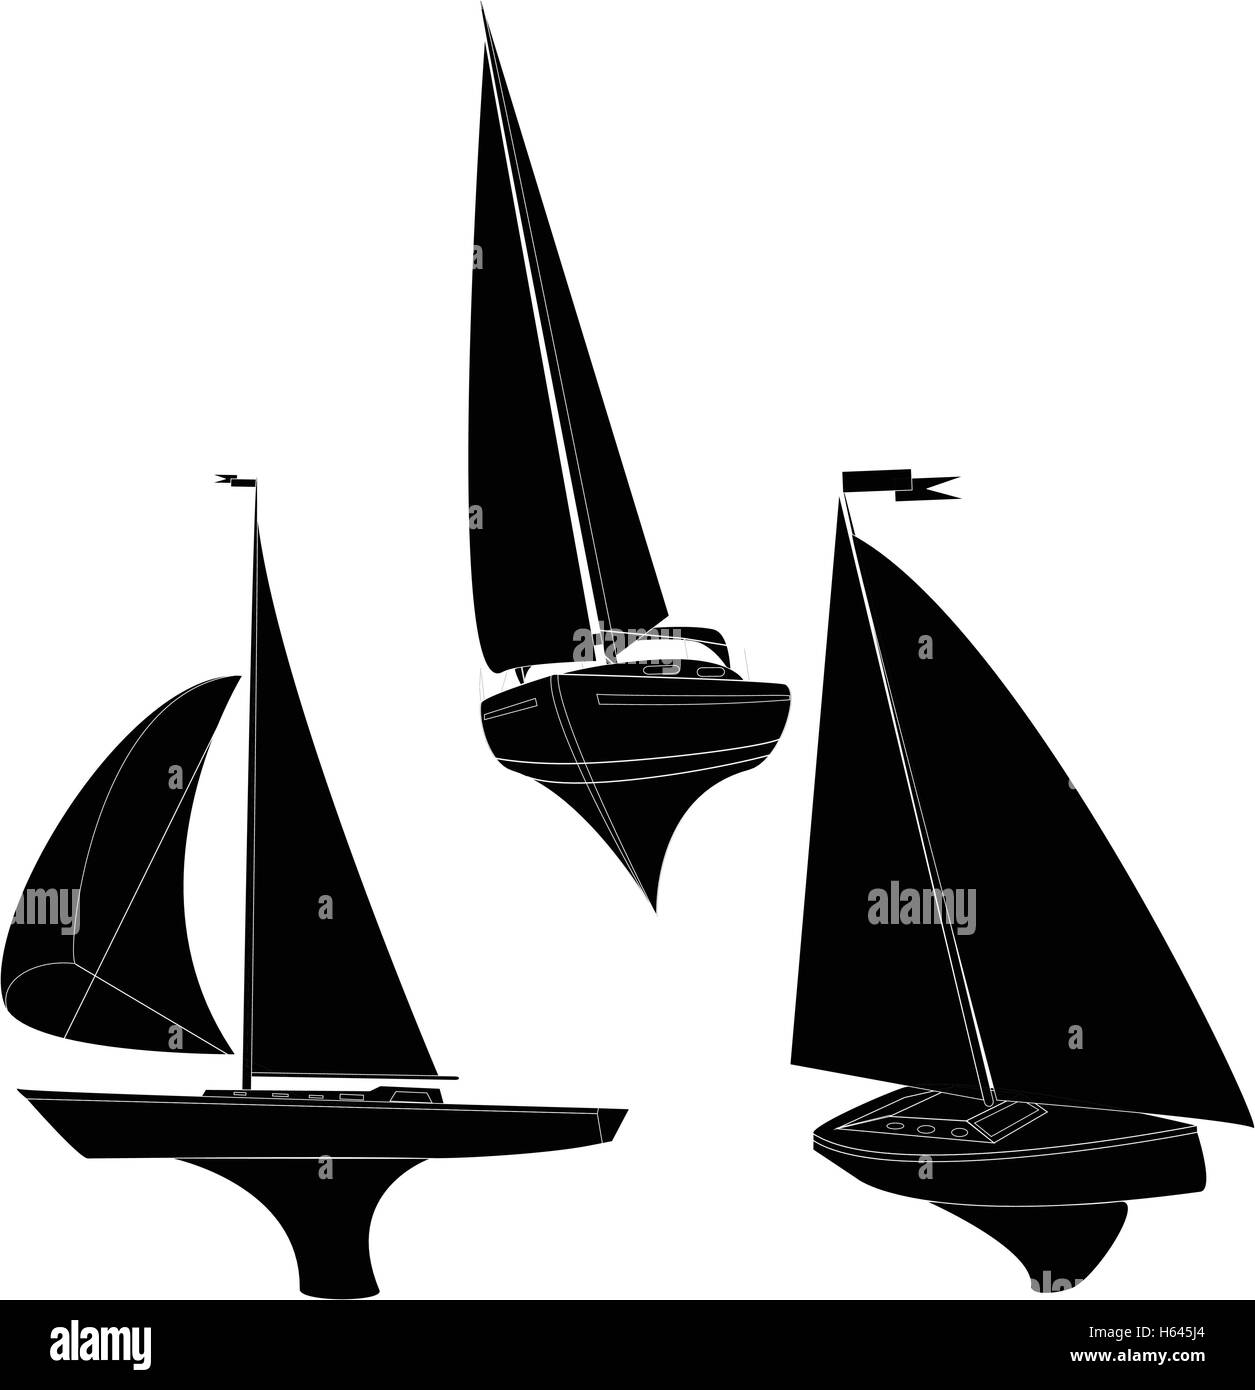 yacht vector illustration artvork Stock Vector